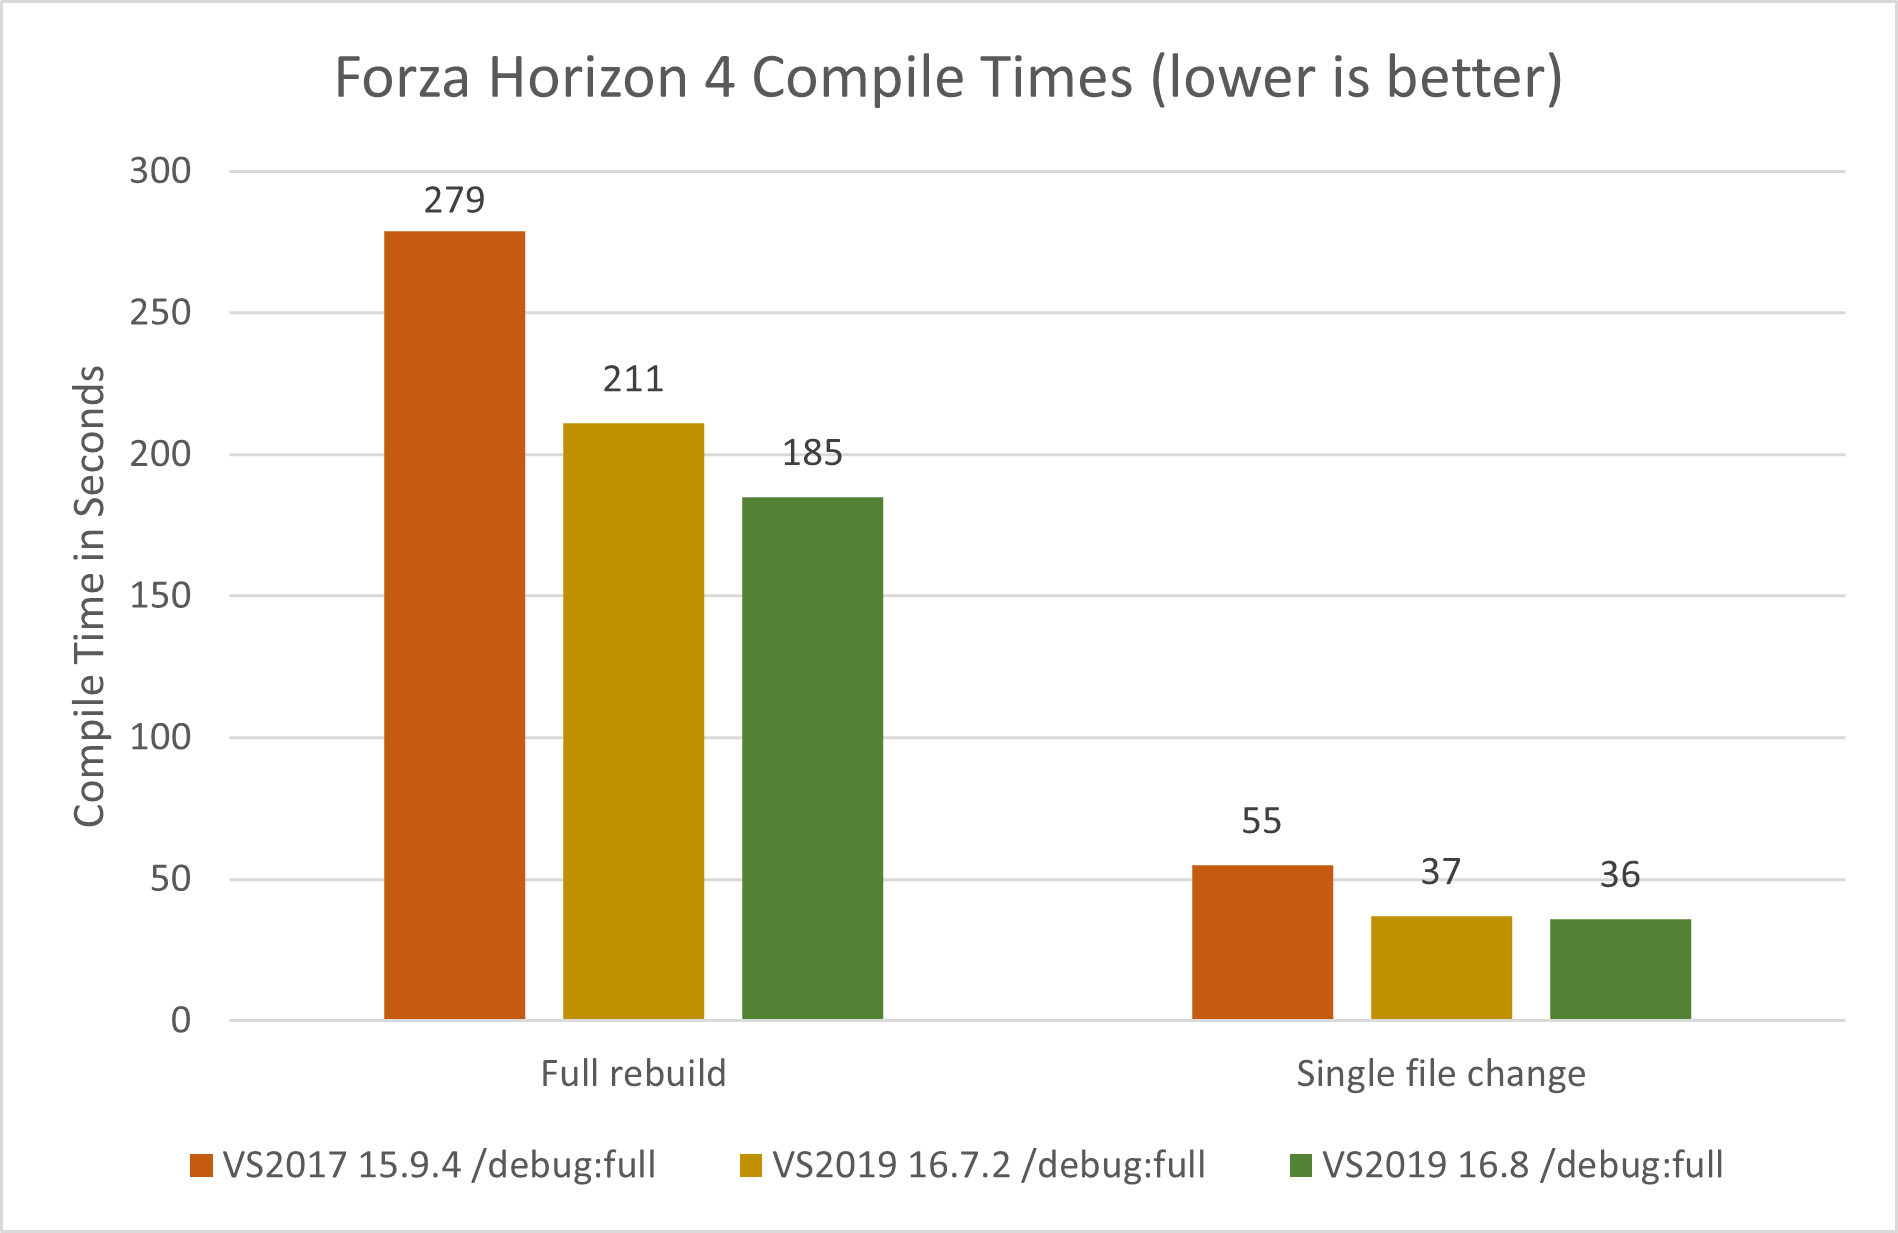 Image FH compile